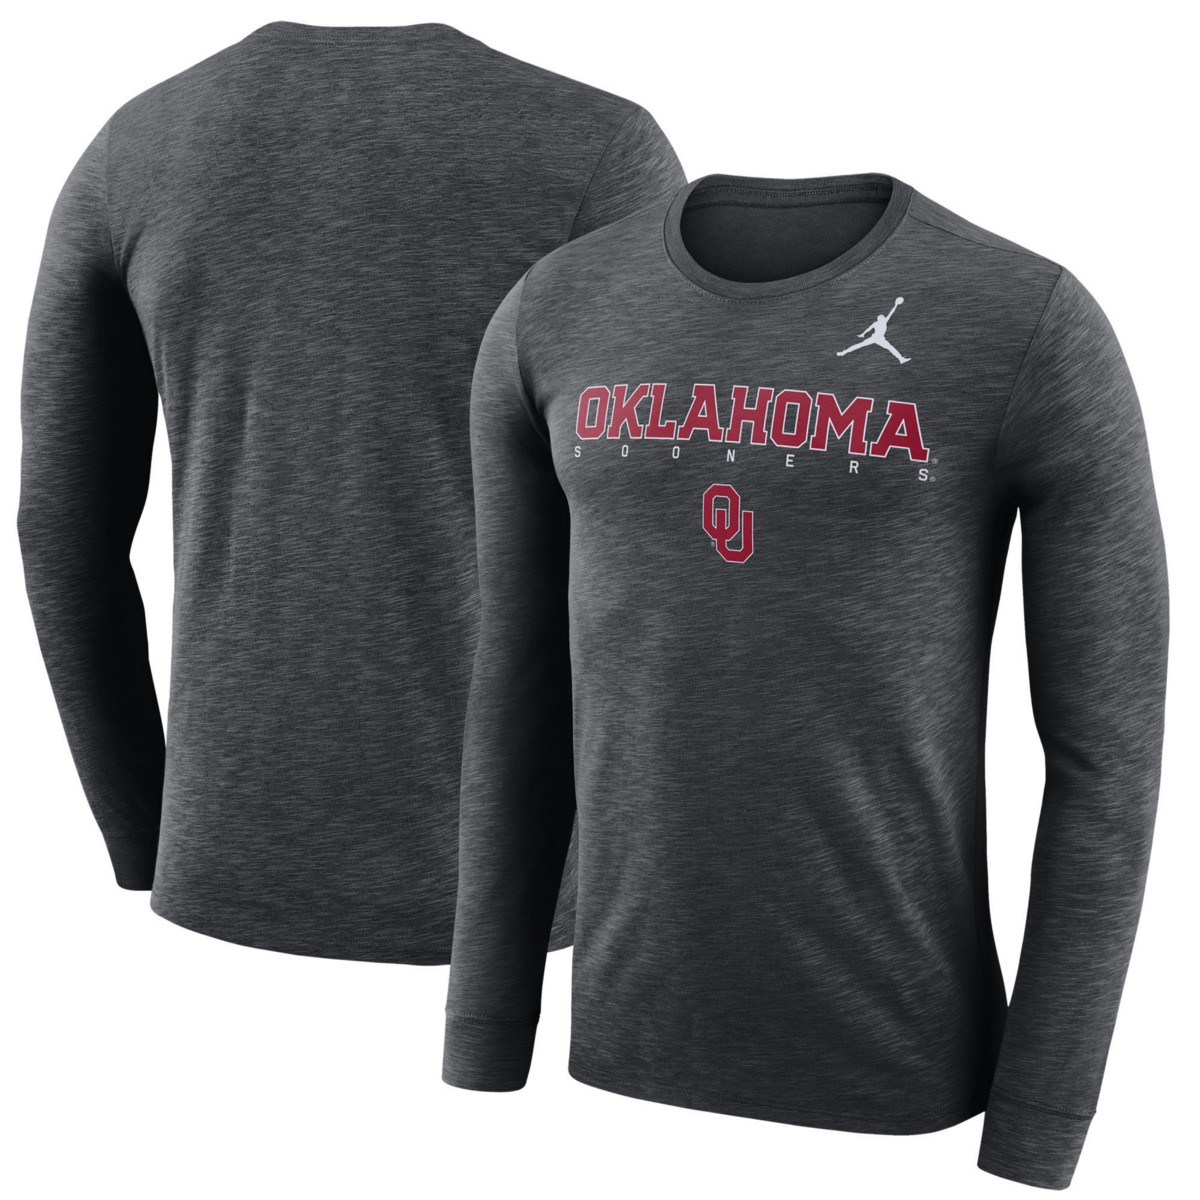 304395759f0fa3 Jordan Men s Oklahoma Sooners Dri-FIT Facility Long Sleeve T-Shirt